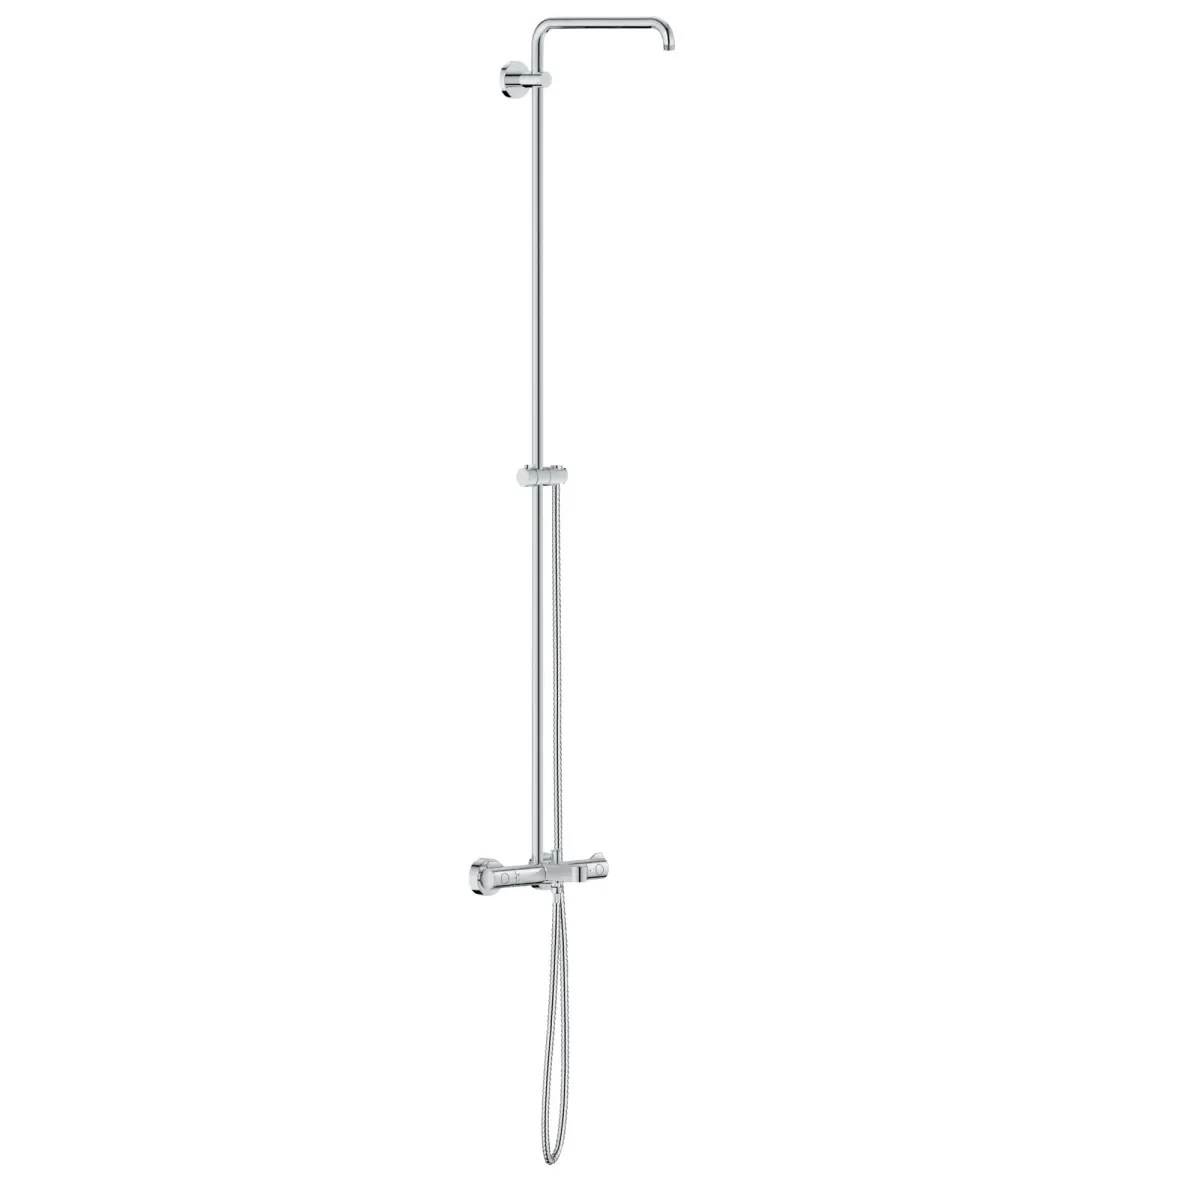 Grohe 26 490